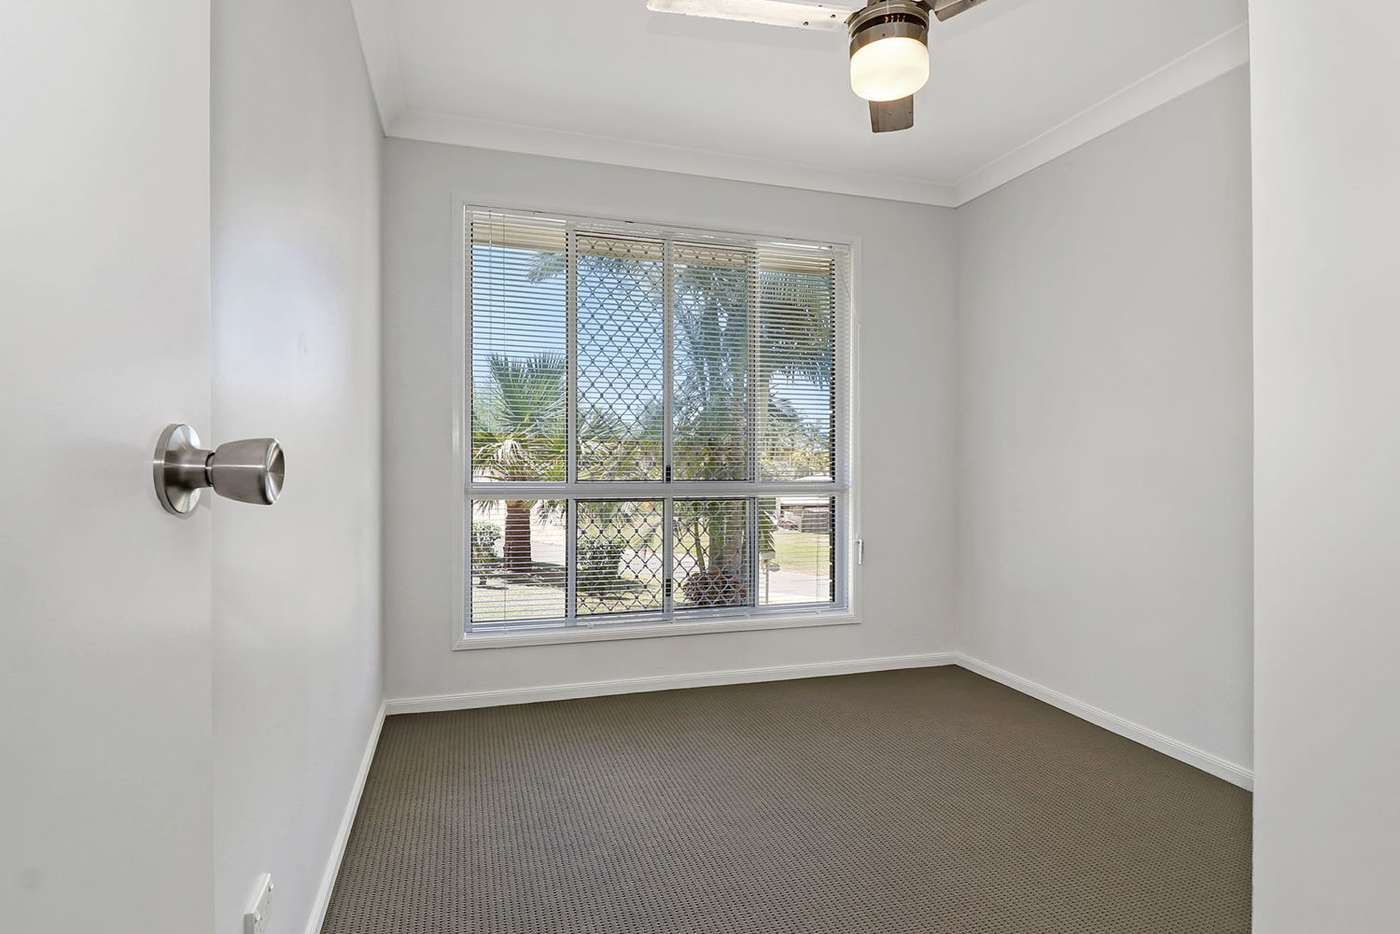 Seventh view of Homely house listing, 31 Nicholson Street, Emu Park QLD 4710